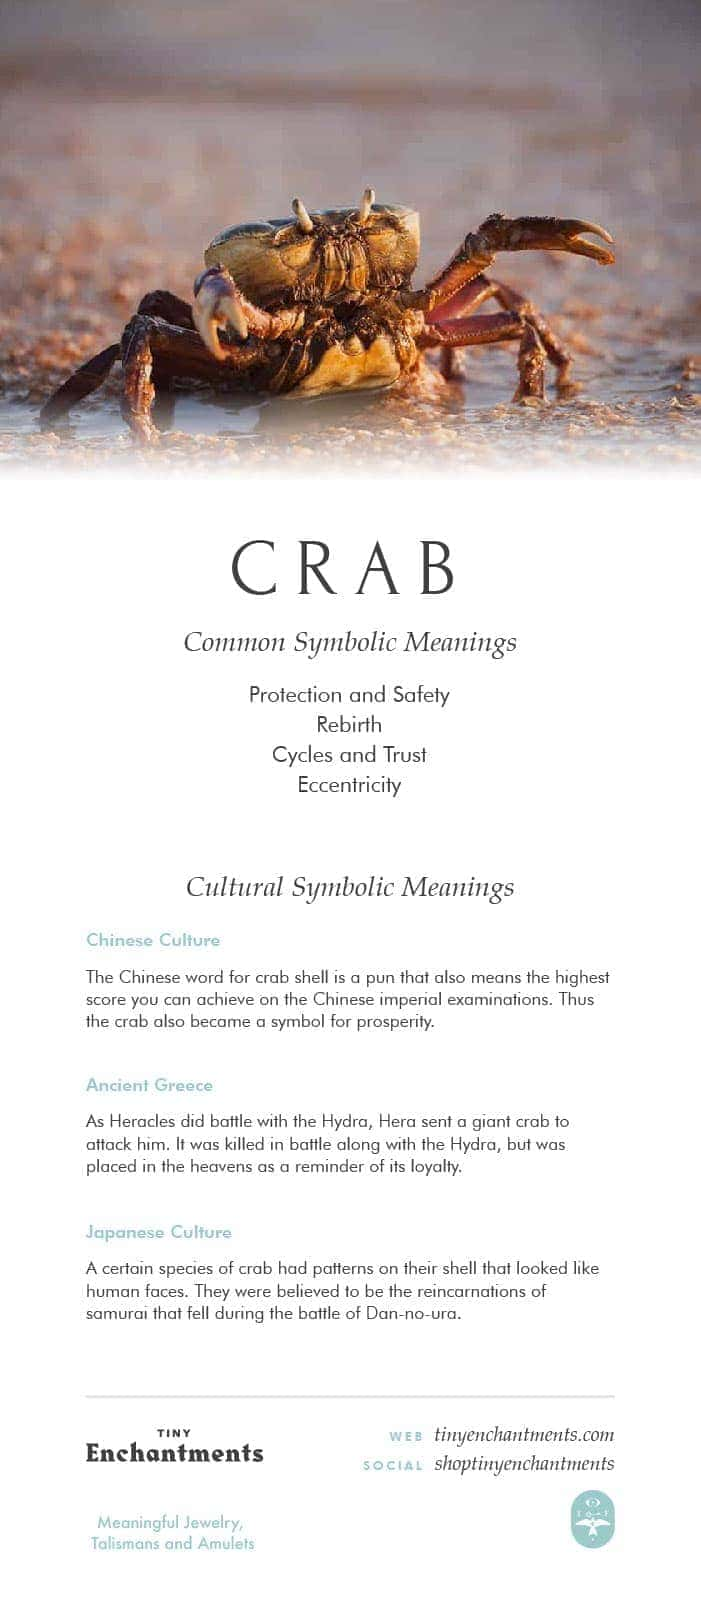 Crab Symbolism - Crab Dream Meaning, Crab Mythology and Crab Spirit Animal Meanings Full Infographic